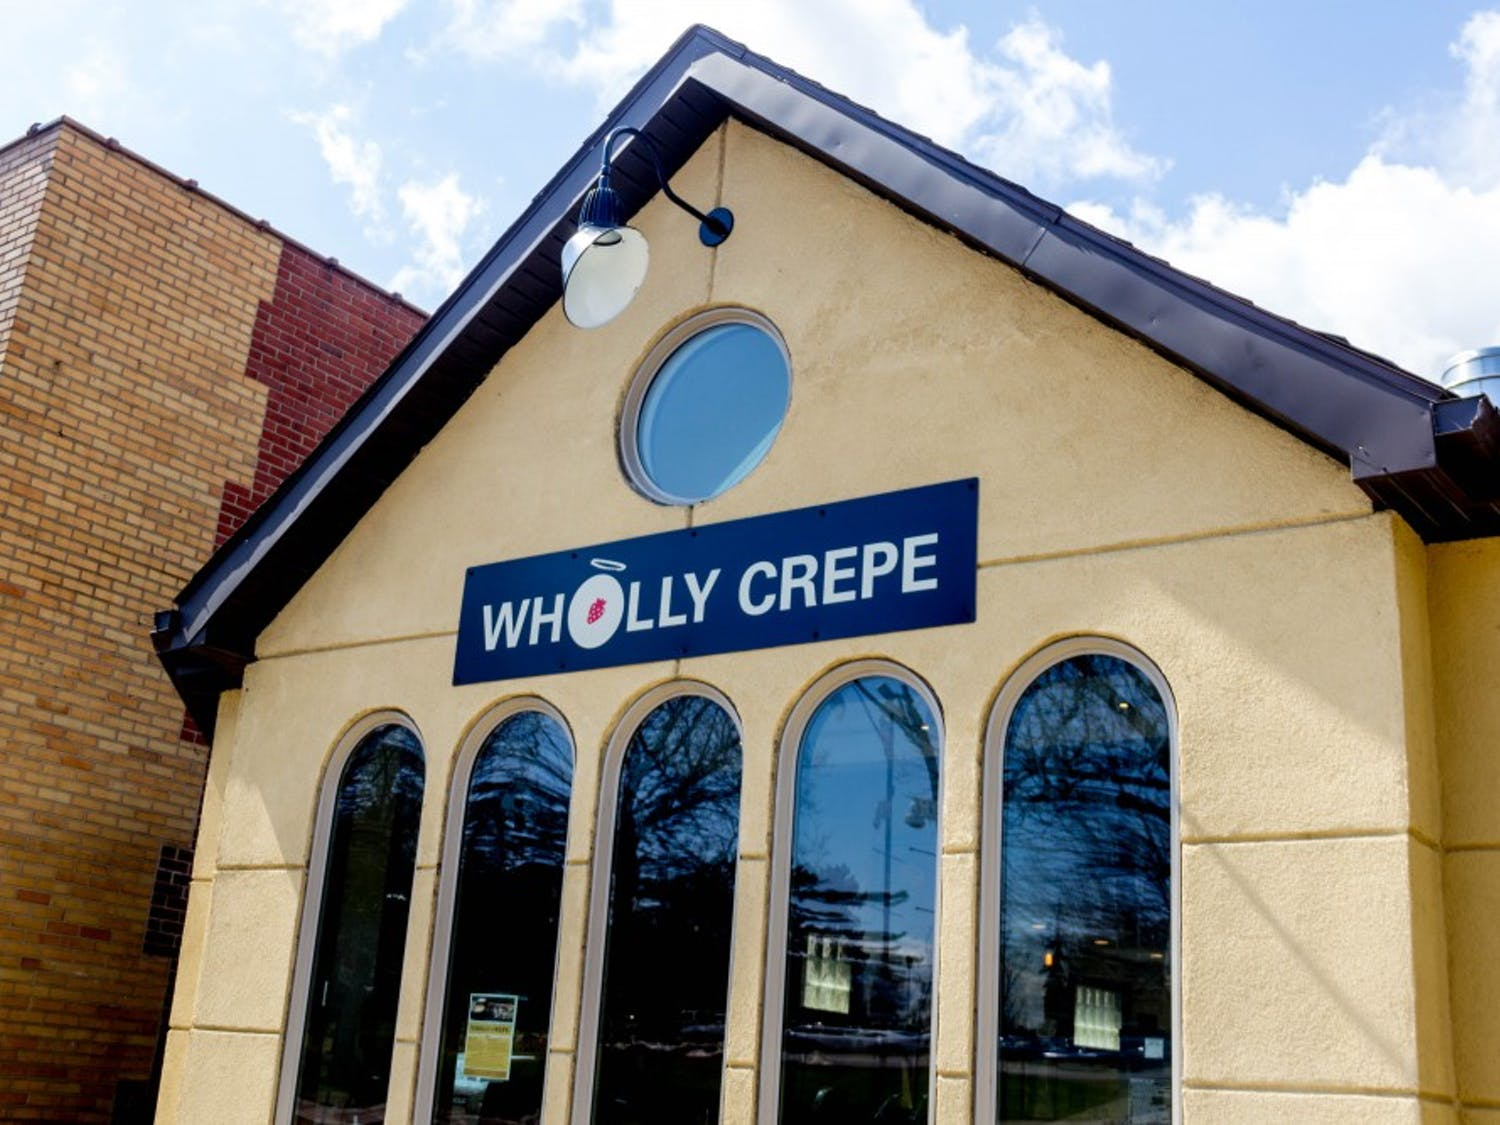 Wholly Crepe is a new restaurant on Main Street near South Campus. The creperie features a variety of sweet and savory crepes at student-friendly prices.